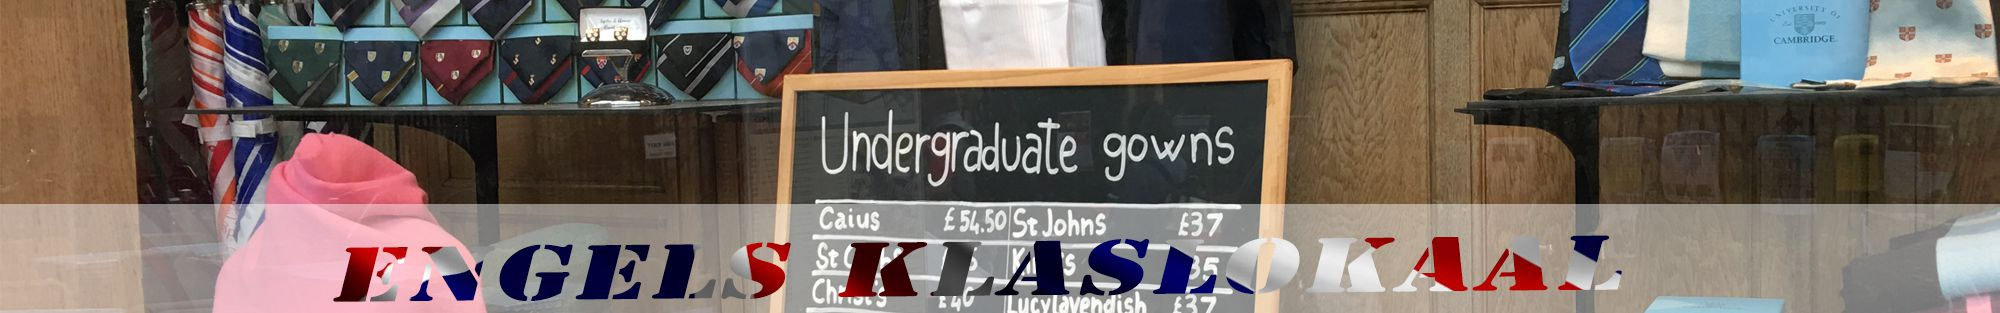 studententoga's cambridge header engels klaslokaal